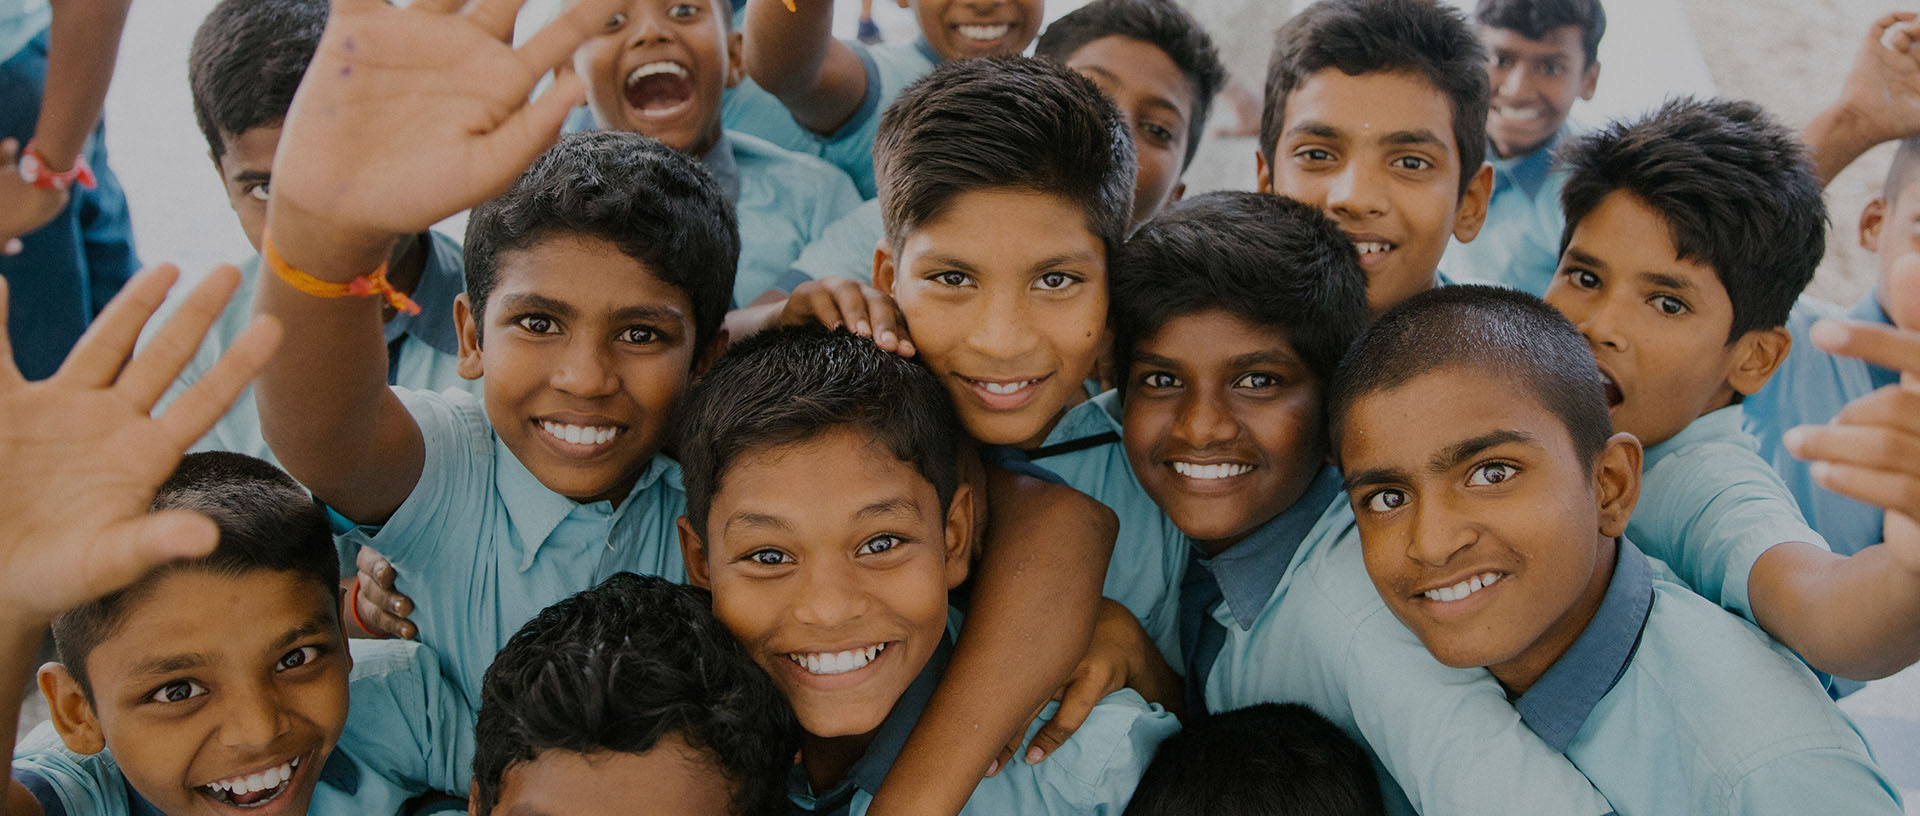 group of kids smiling together